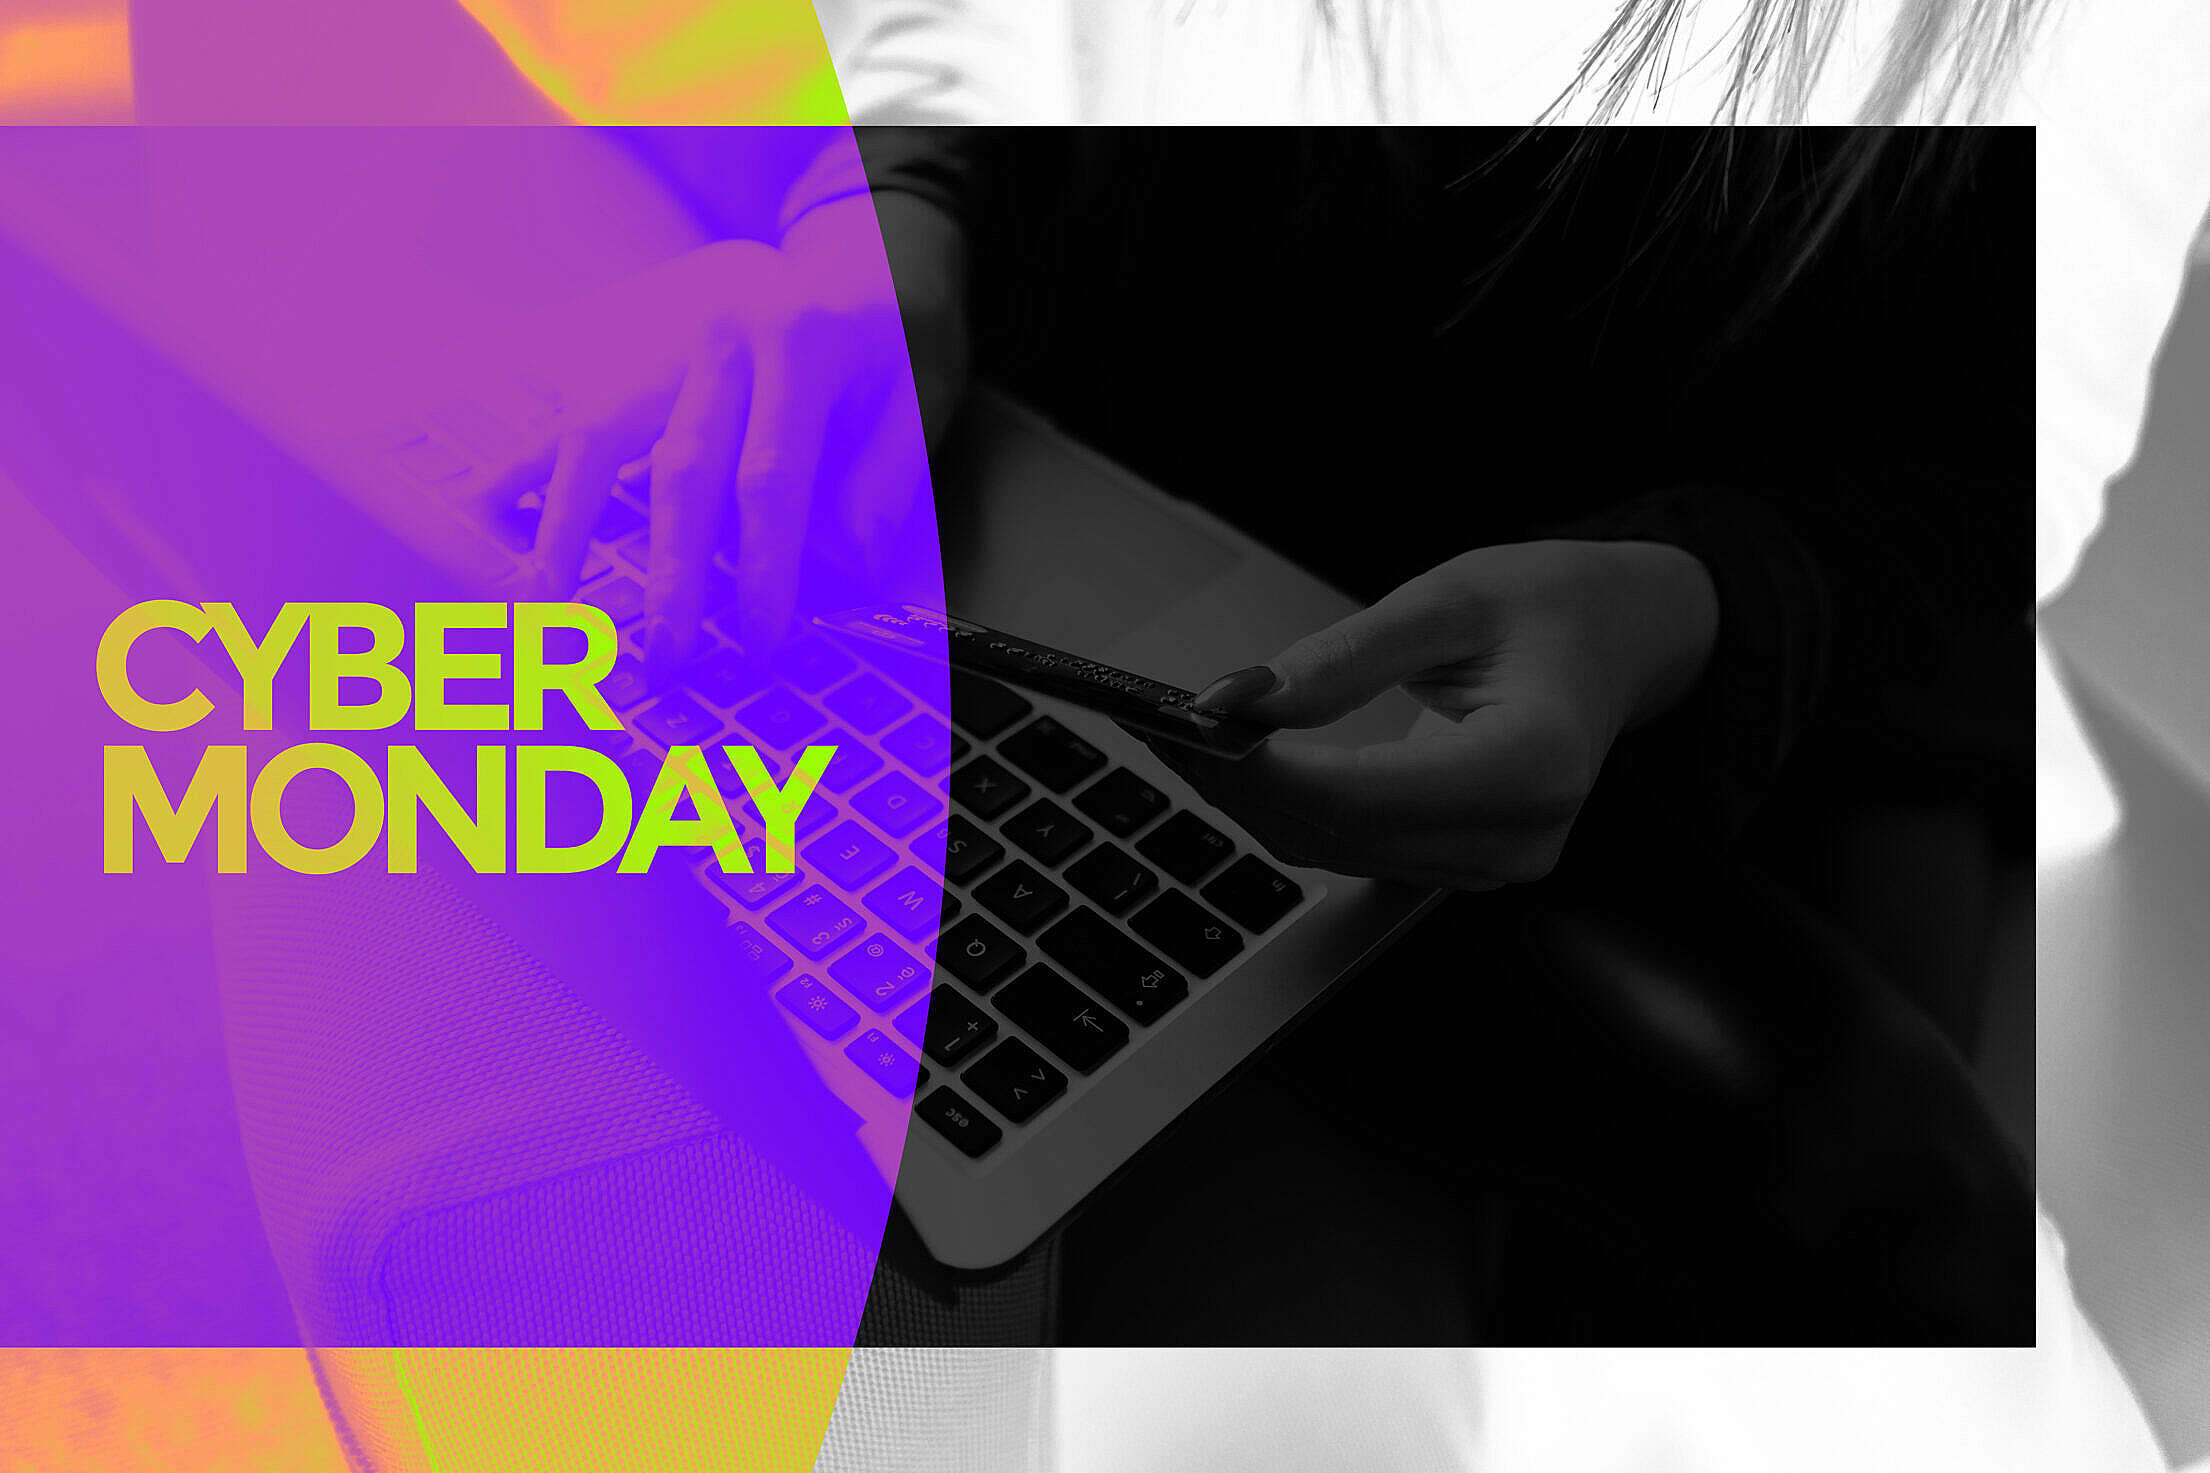 Cyber Monday Lettering Background Free Stock Photo